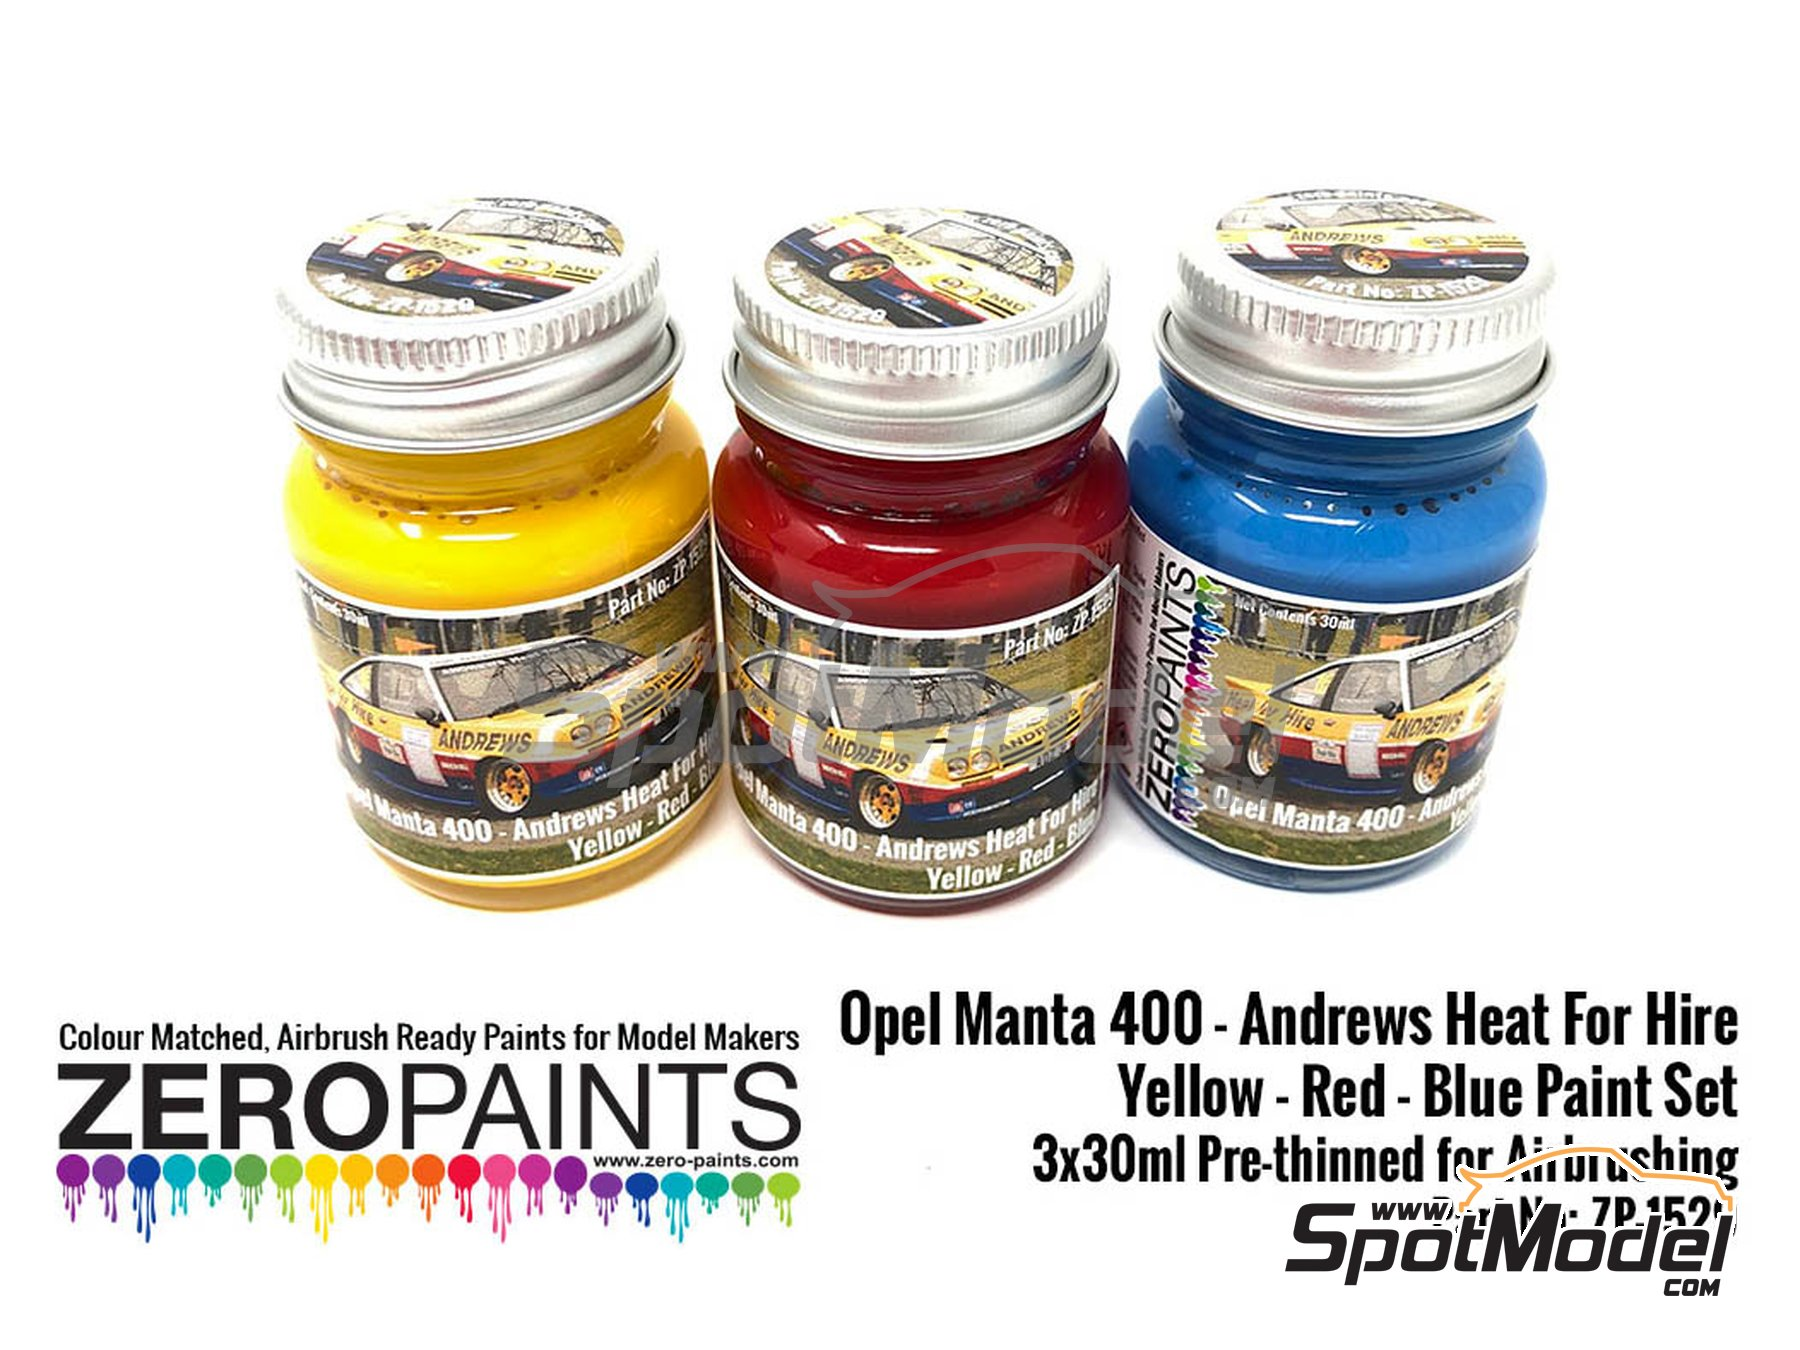 Image 1: Amarillo, rojo y azul Andrews Heat for Hire - 3 x 30ml | Set de pinturas fabricado por Zero Paints (ref. ZP-1529)